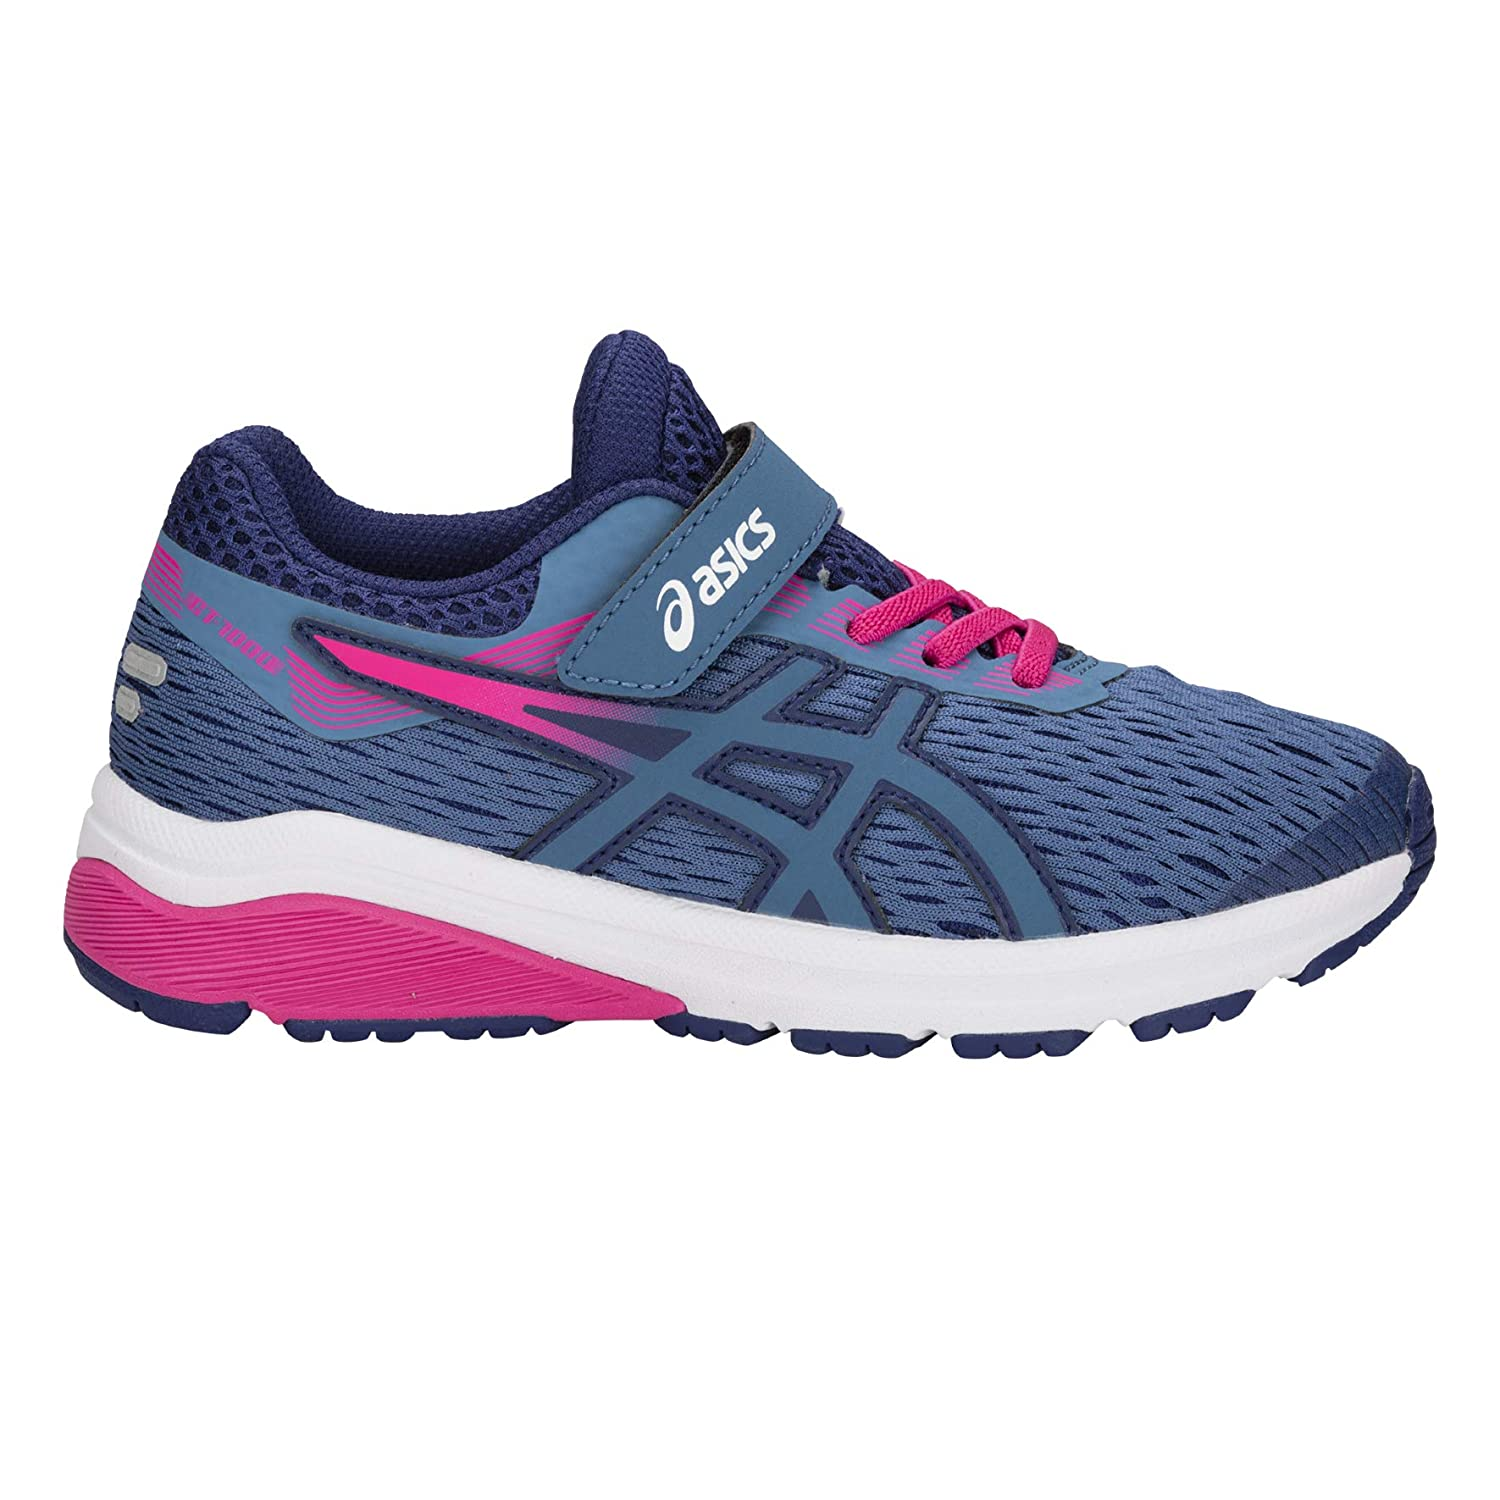 1000 Loisirs Junior Gt Asics Et 7 Chaussures PsSports E9DHbeWI2Y